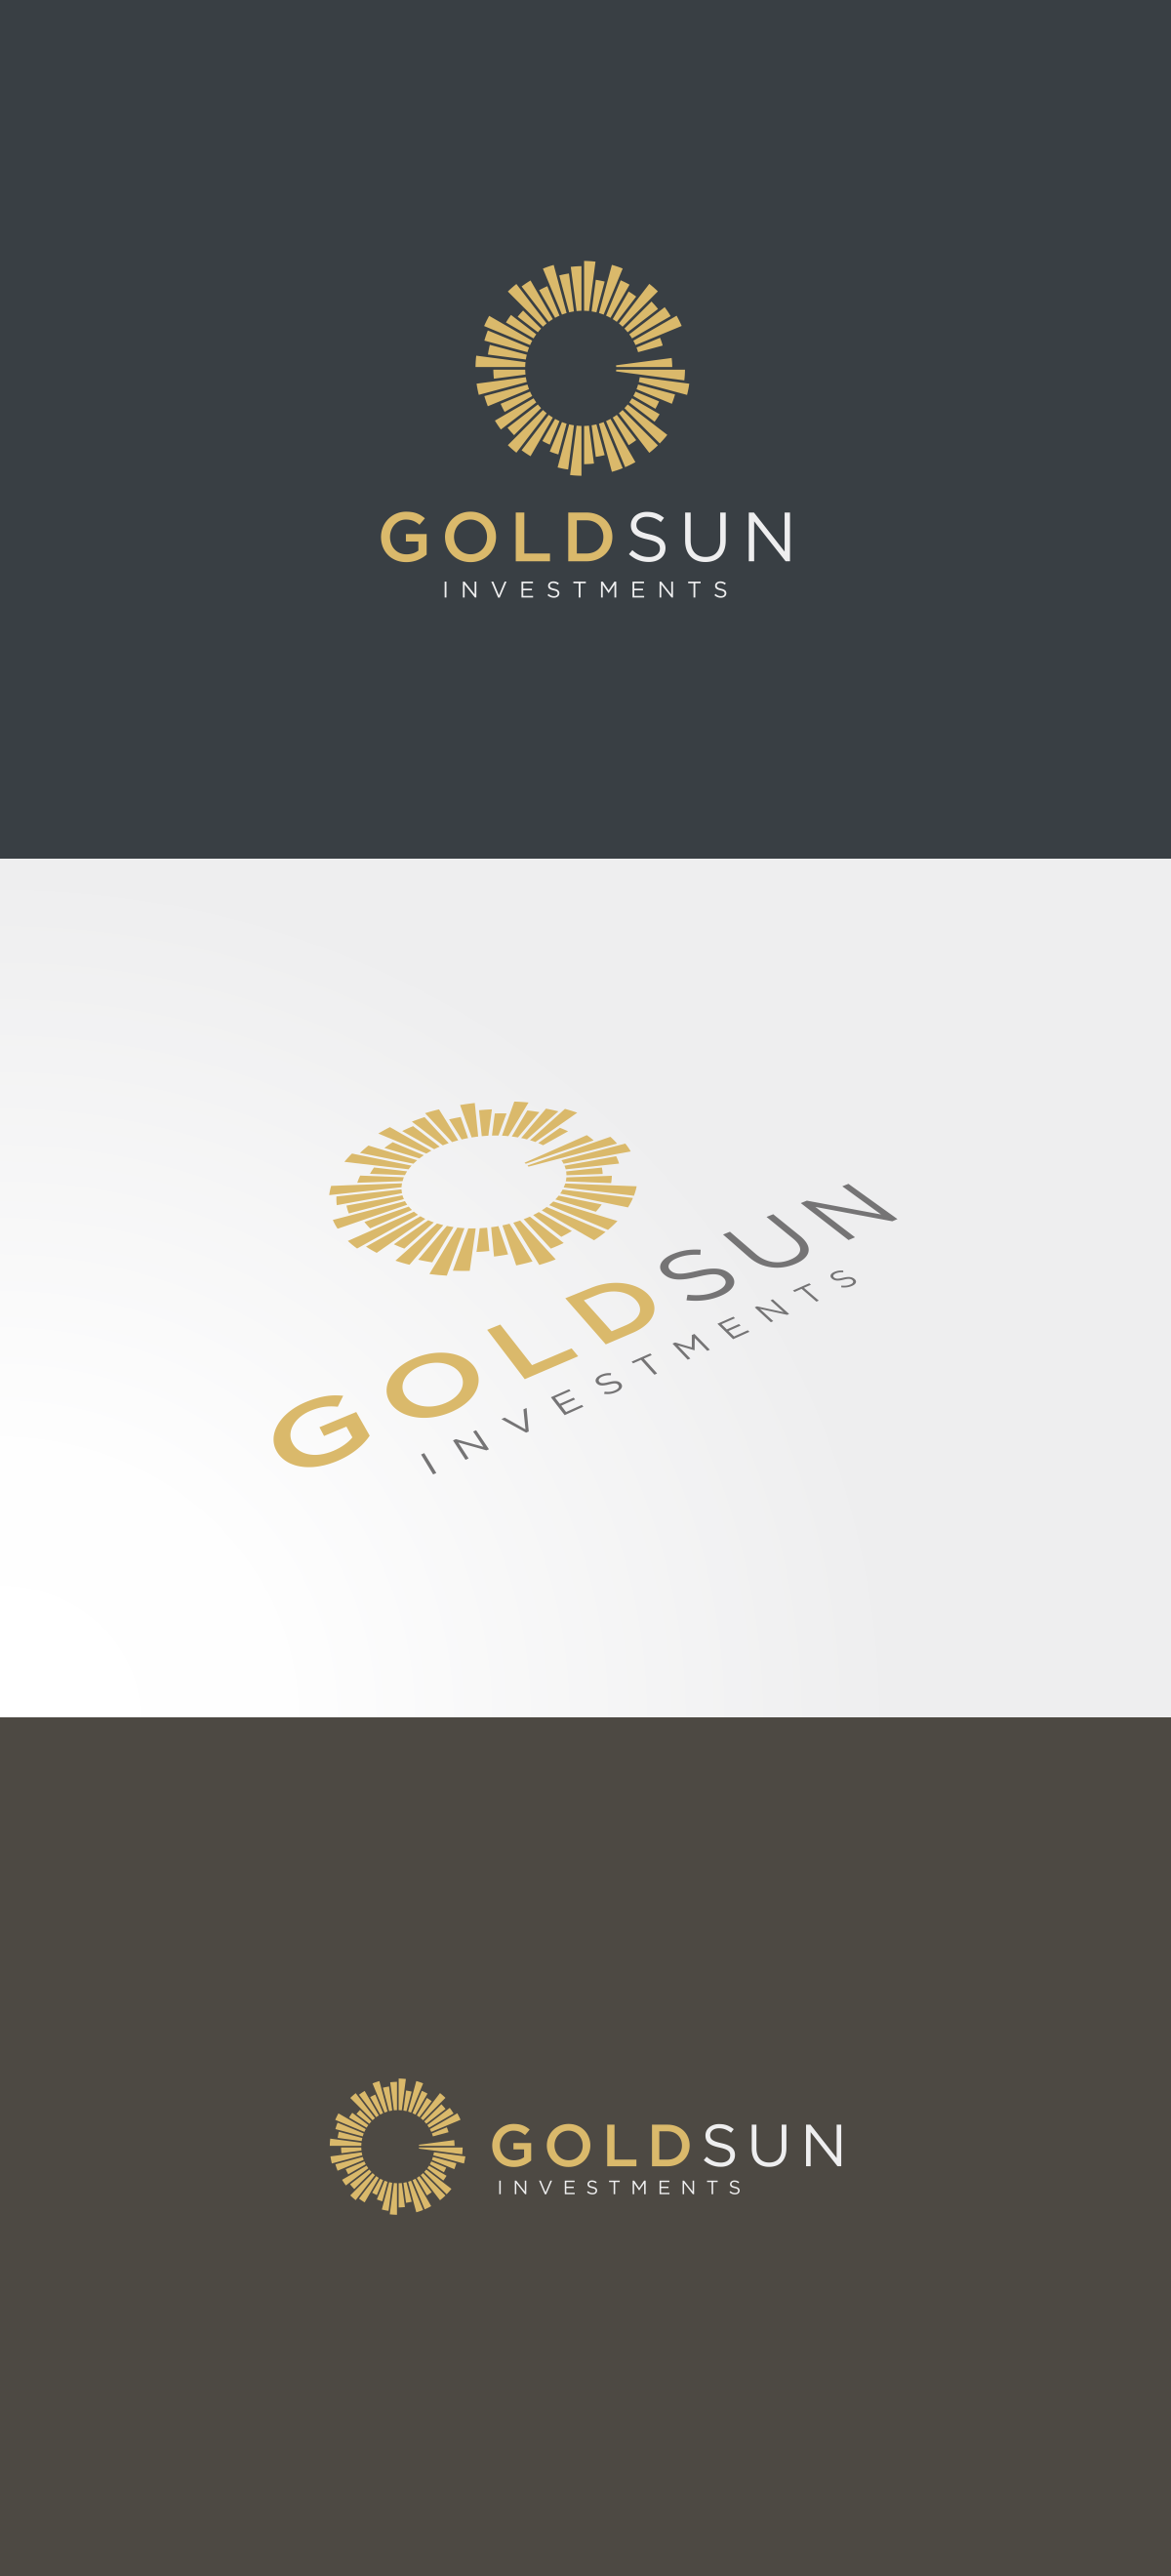 Investment company platform design logo